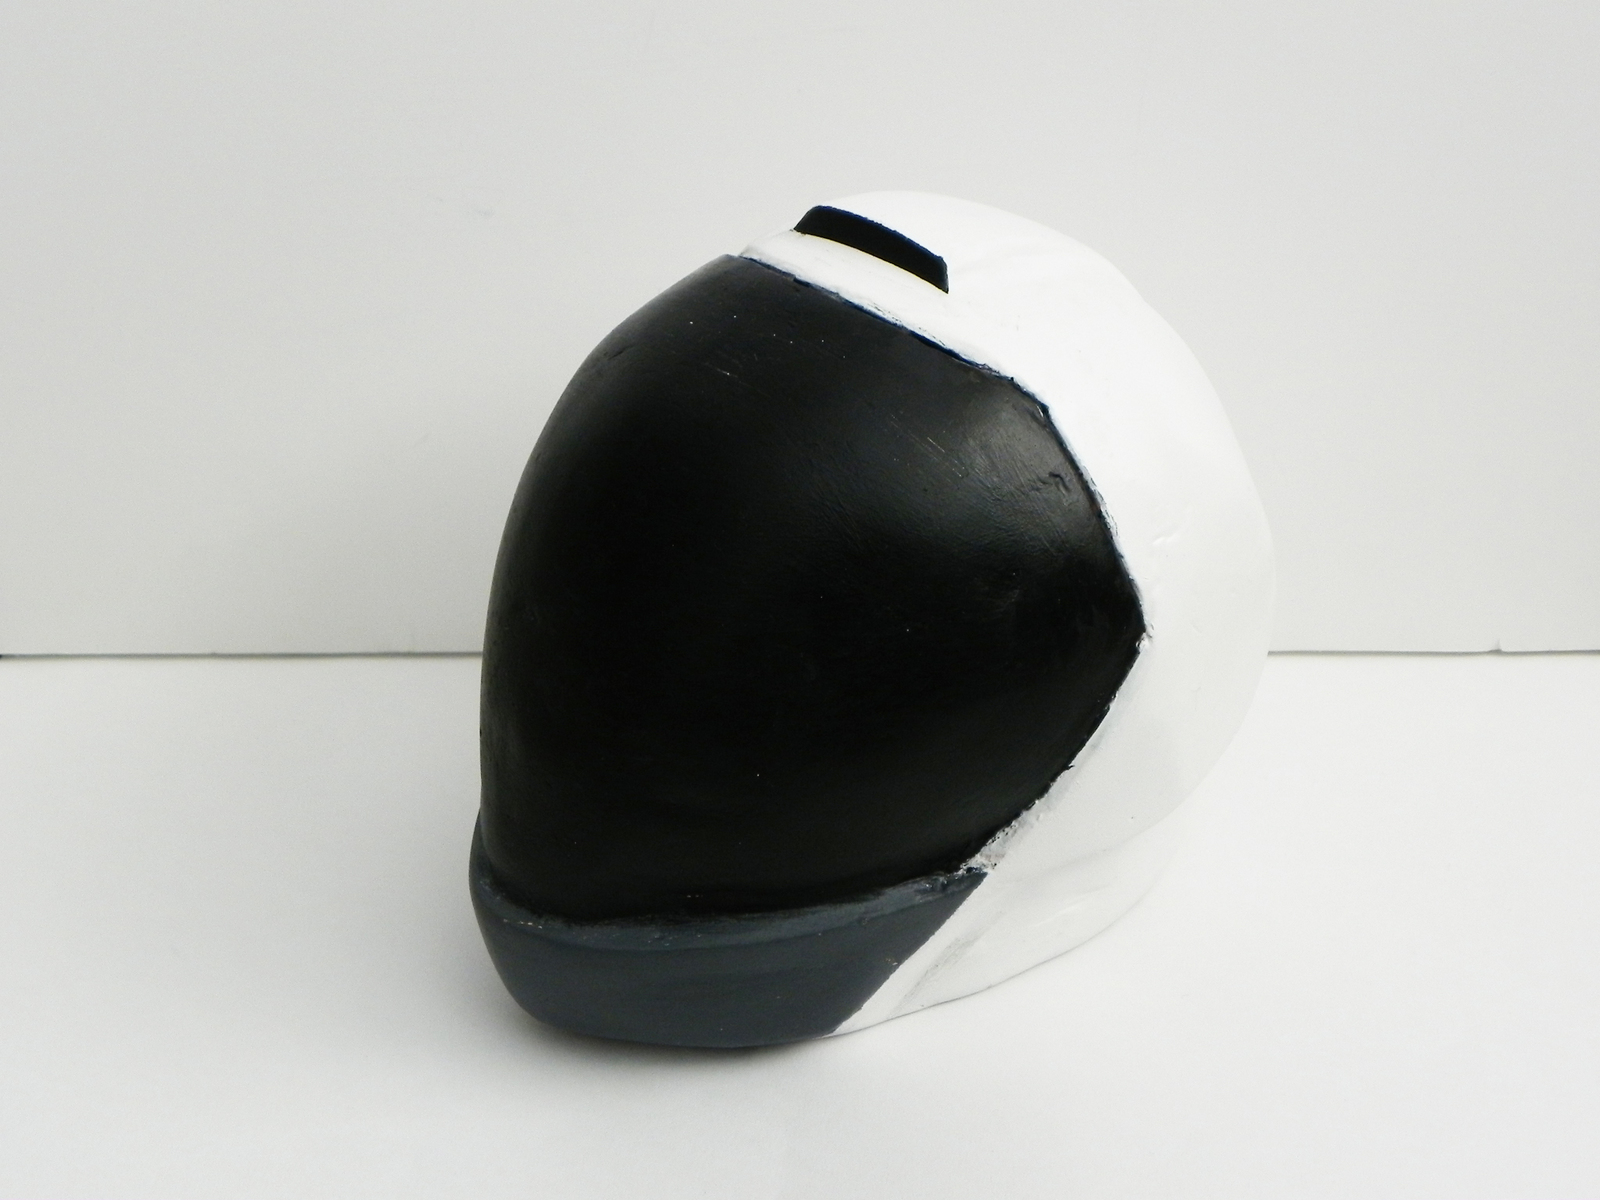 This motorcycle helmet was designed with maximum visibility in mind. The single air intake at the top redirects air flow around the helmet and to the bottom.